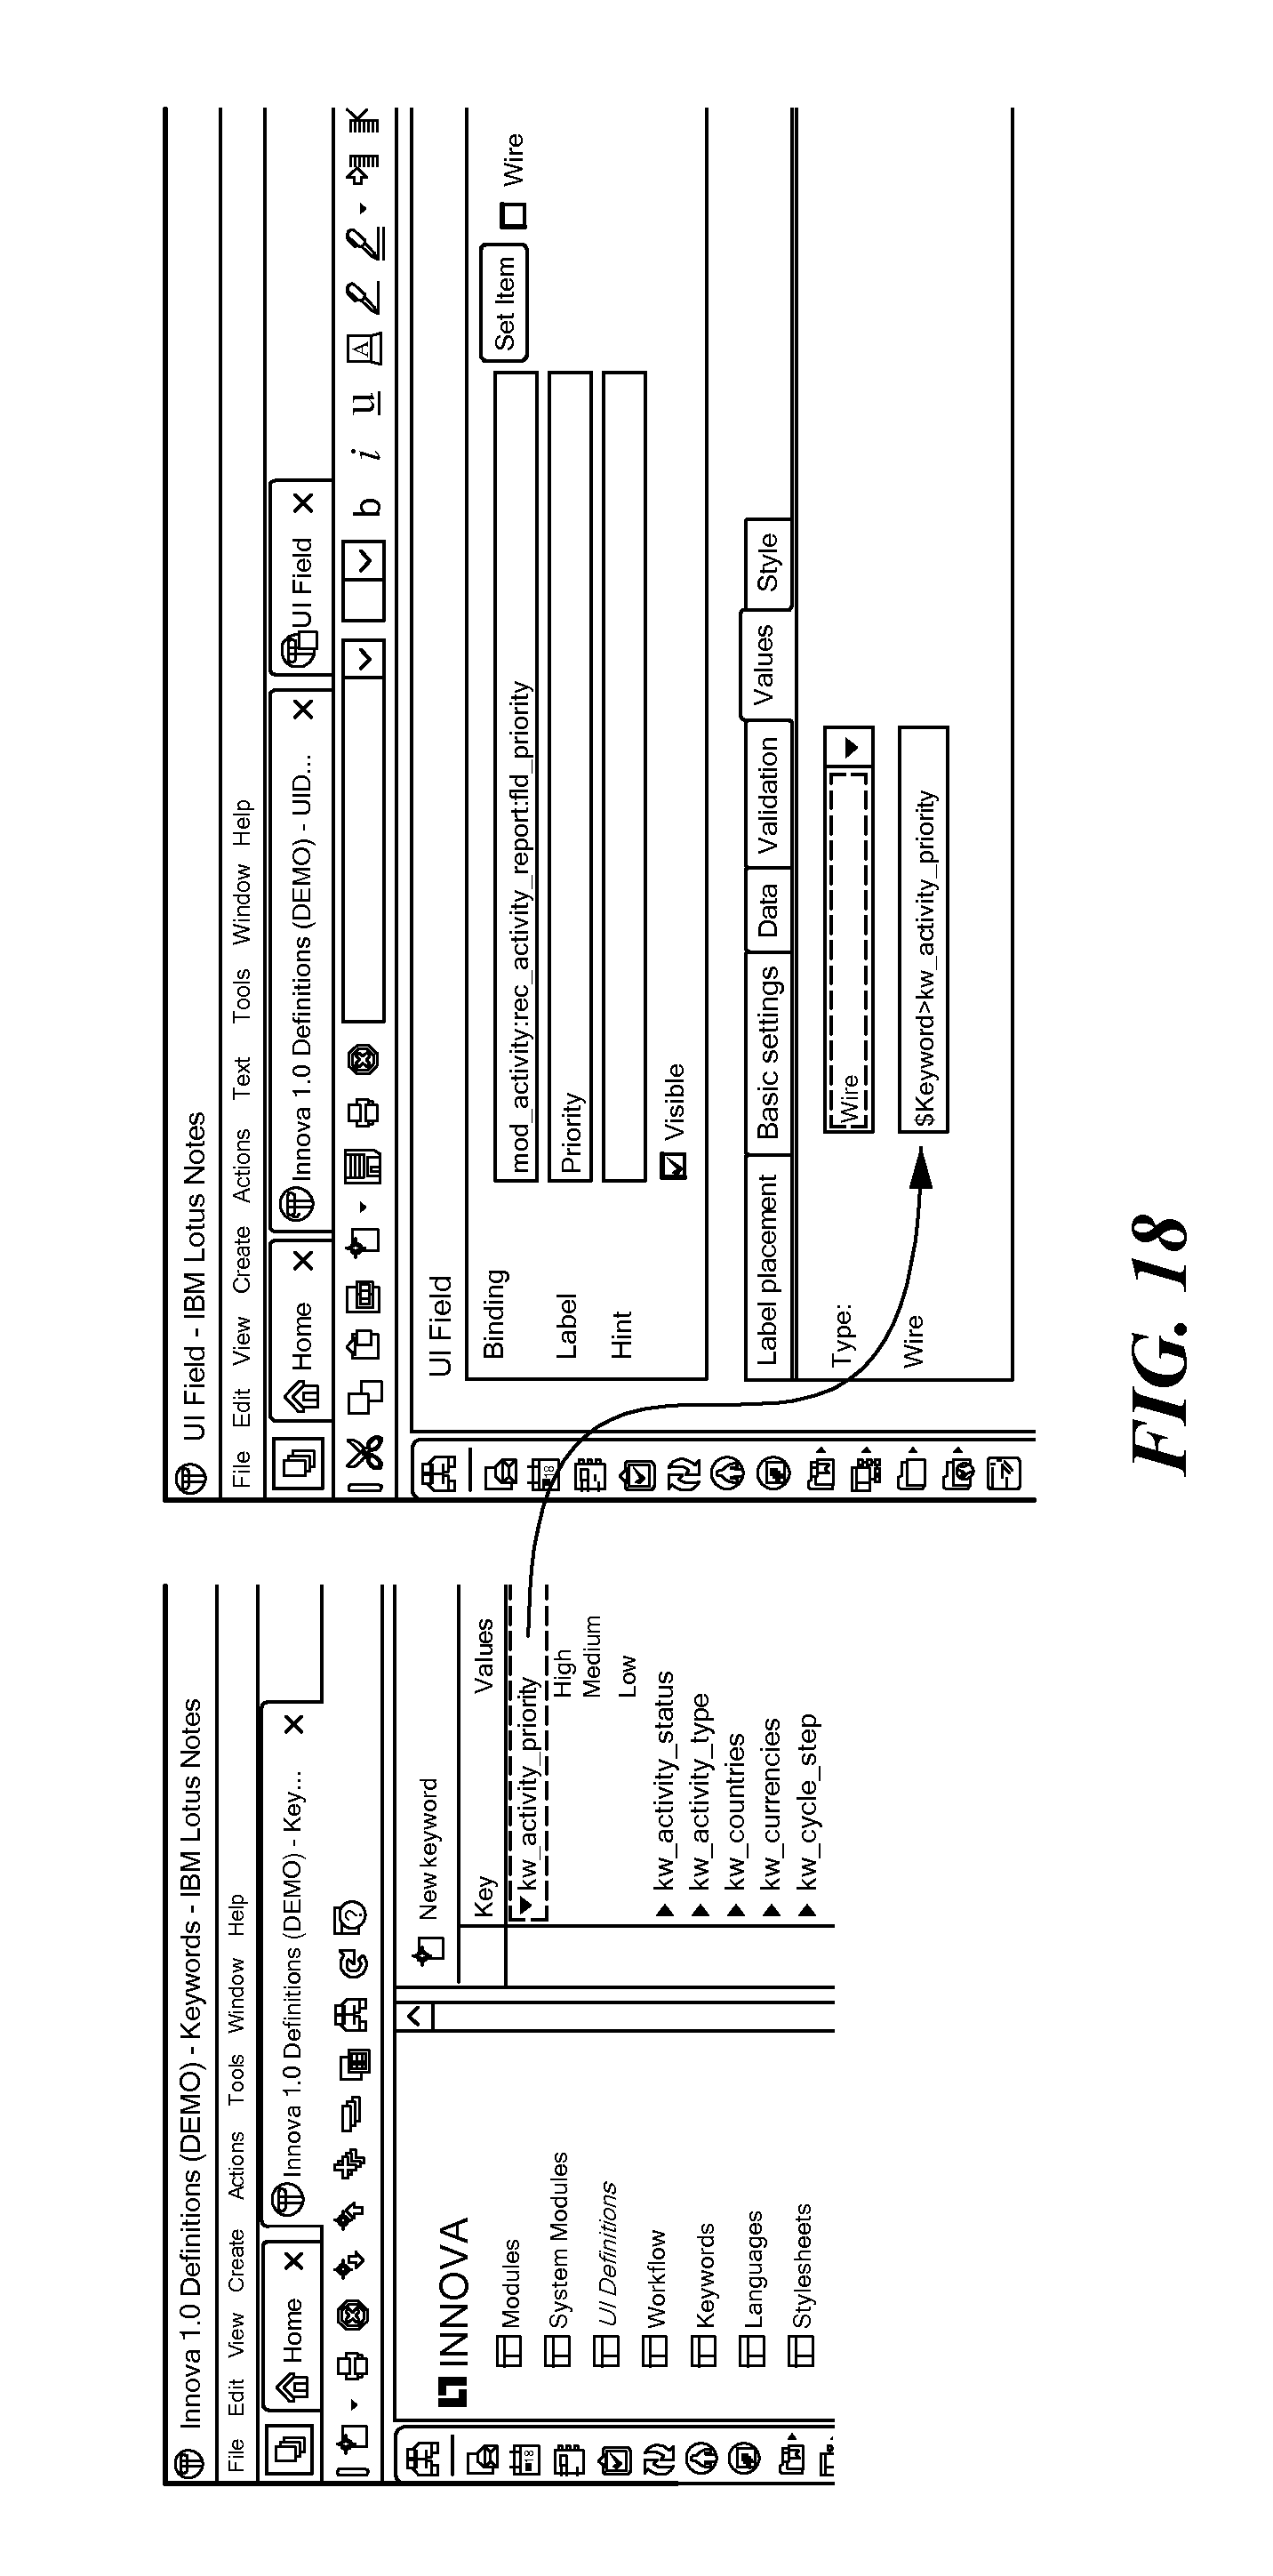 Reconcile Invoices Definition Patent Us  Apparatus And Method For Constructing Data  Excel Invoice Format with Format Of Money Receipt Word Patent Drawing Proforma Invoice Meaning In Tamil Word